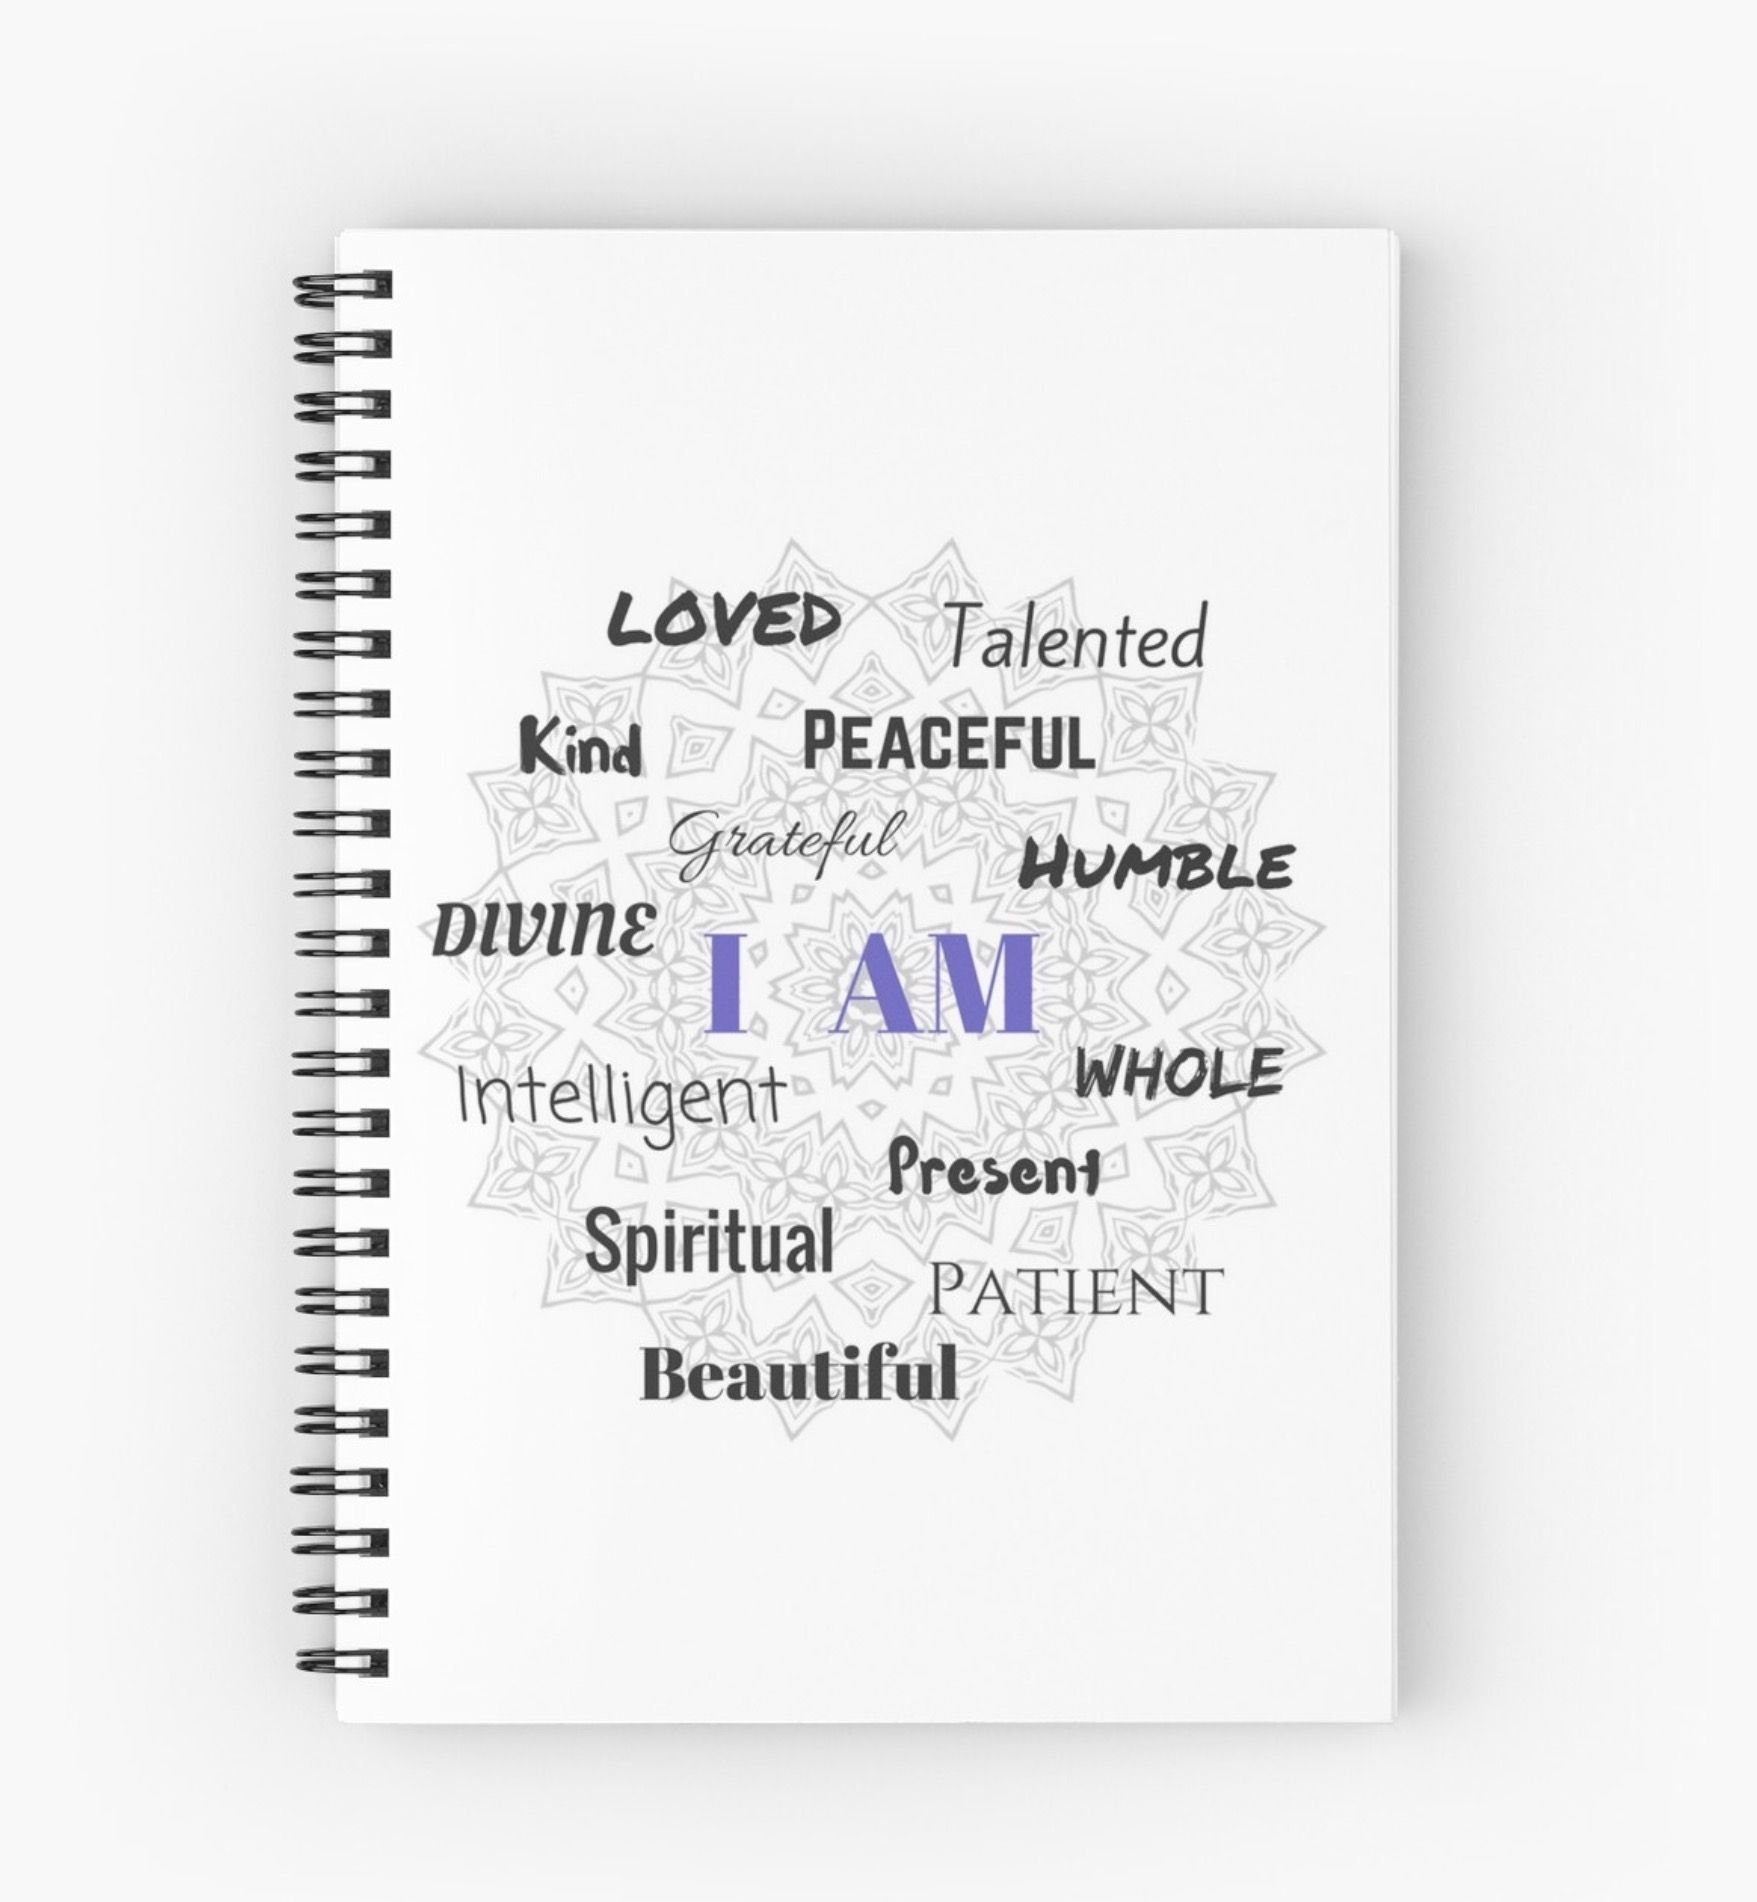 Repeat And Smile I Am Love Kind Peaceful Talented